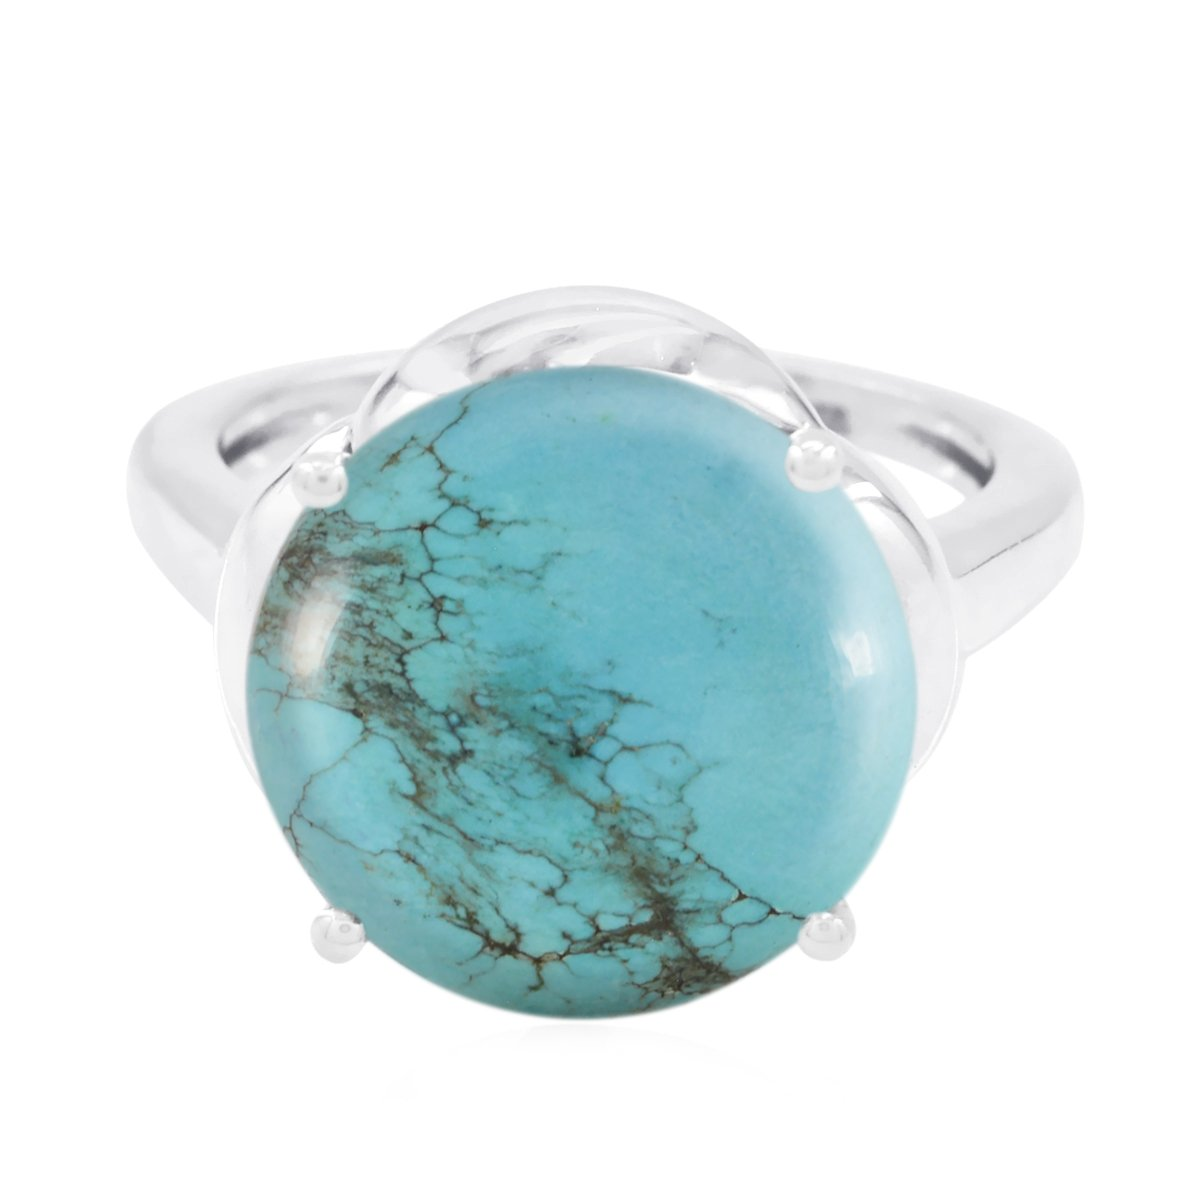 Lucky Gemstone Round cabochon Turquoises Rings - Fashion Silber Blue Turquoises Lucky Gemstone Ring - Supply Jewelry Gift for Cyber Monday Bohemian -US 9.5